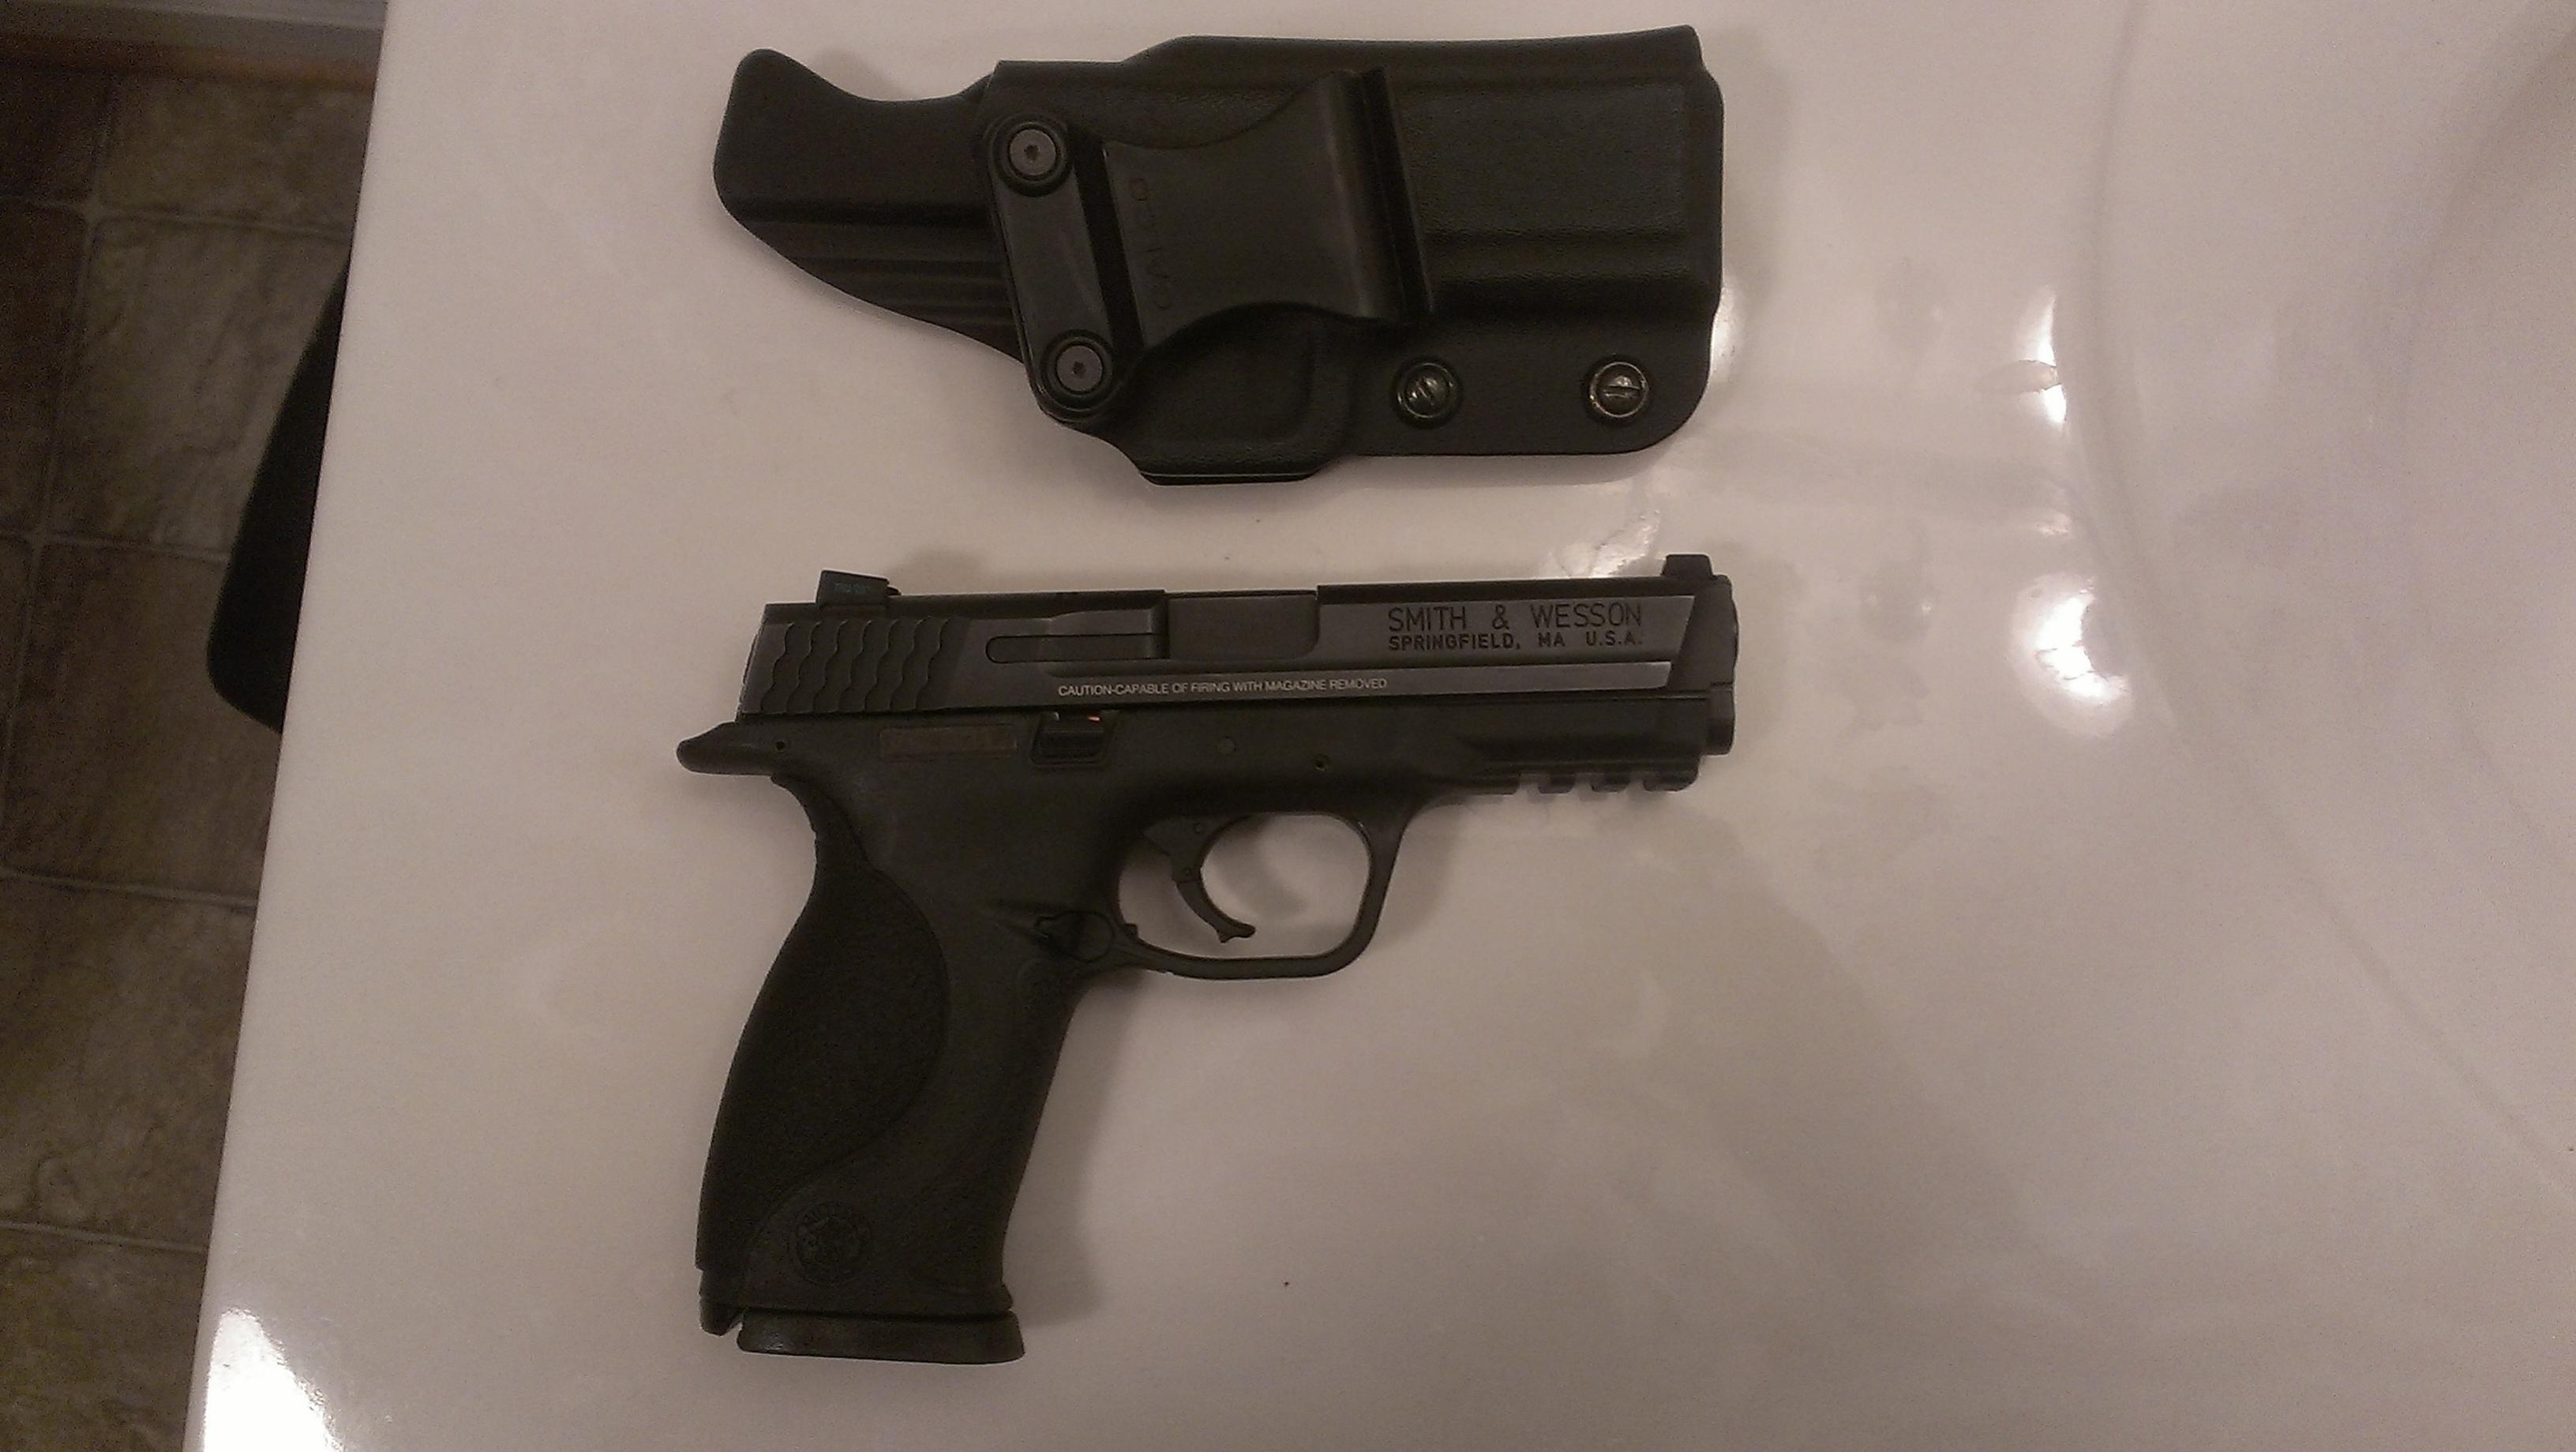 So, who's EDC is a full-size M&P?  Carried in what and where?-imag0136-1-.jpg